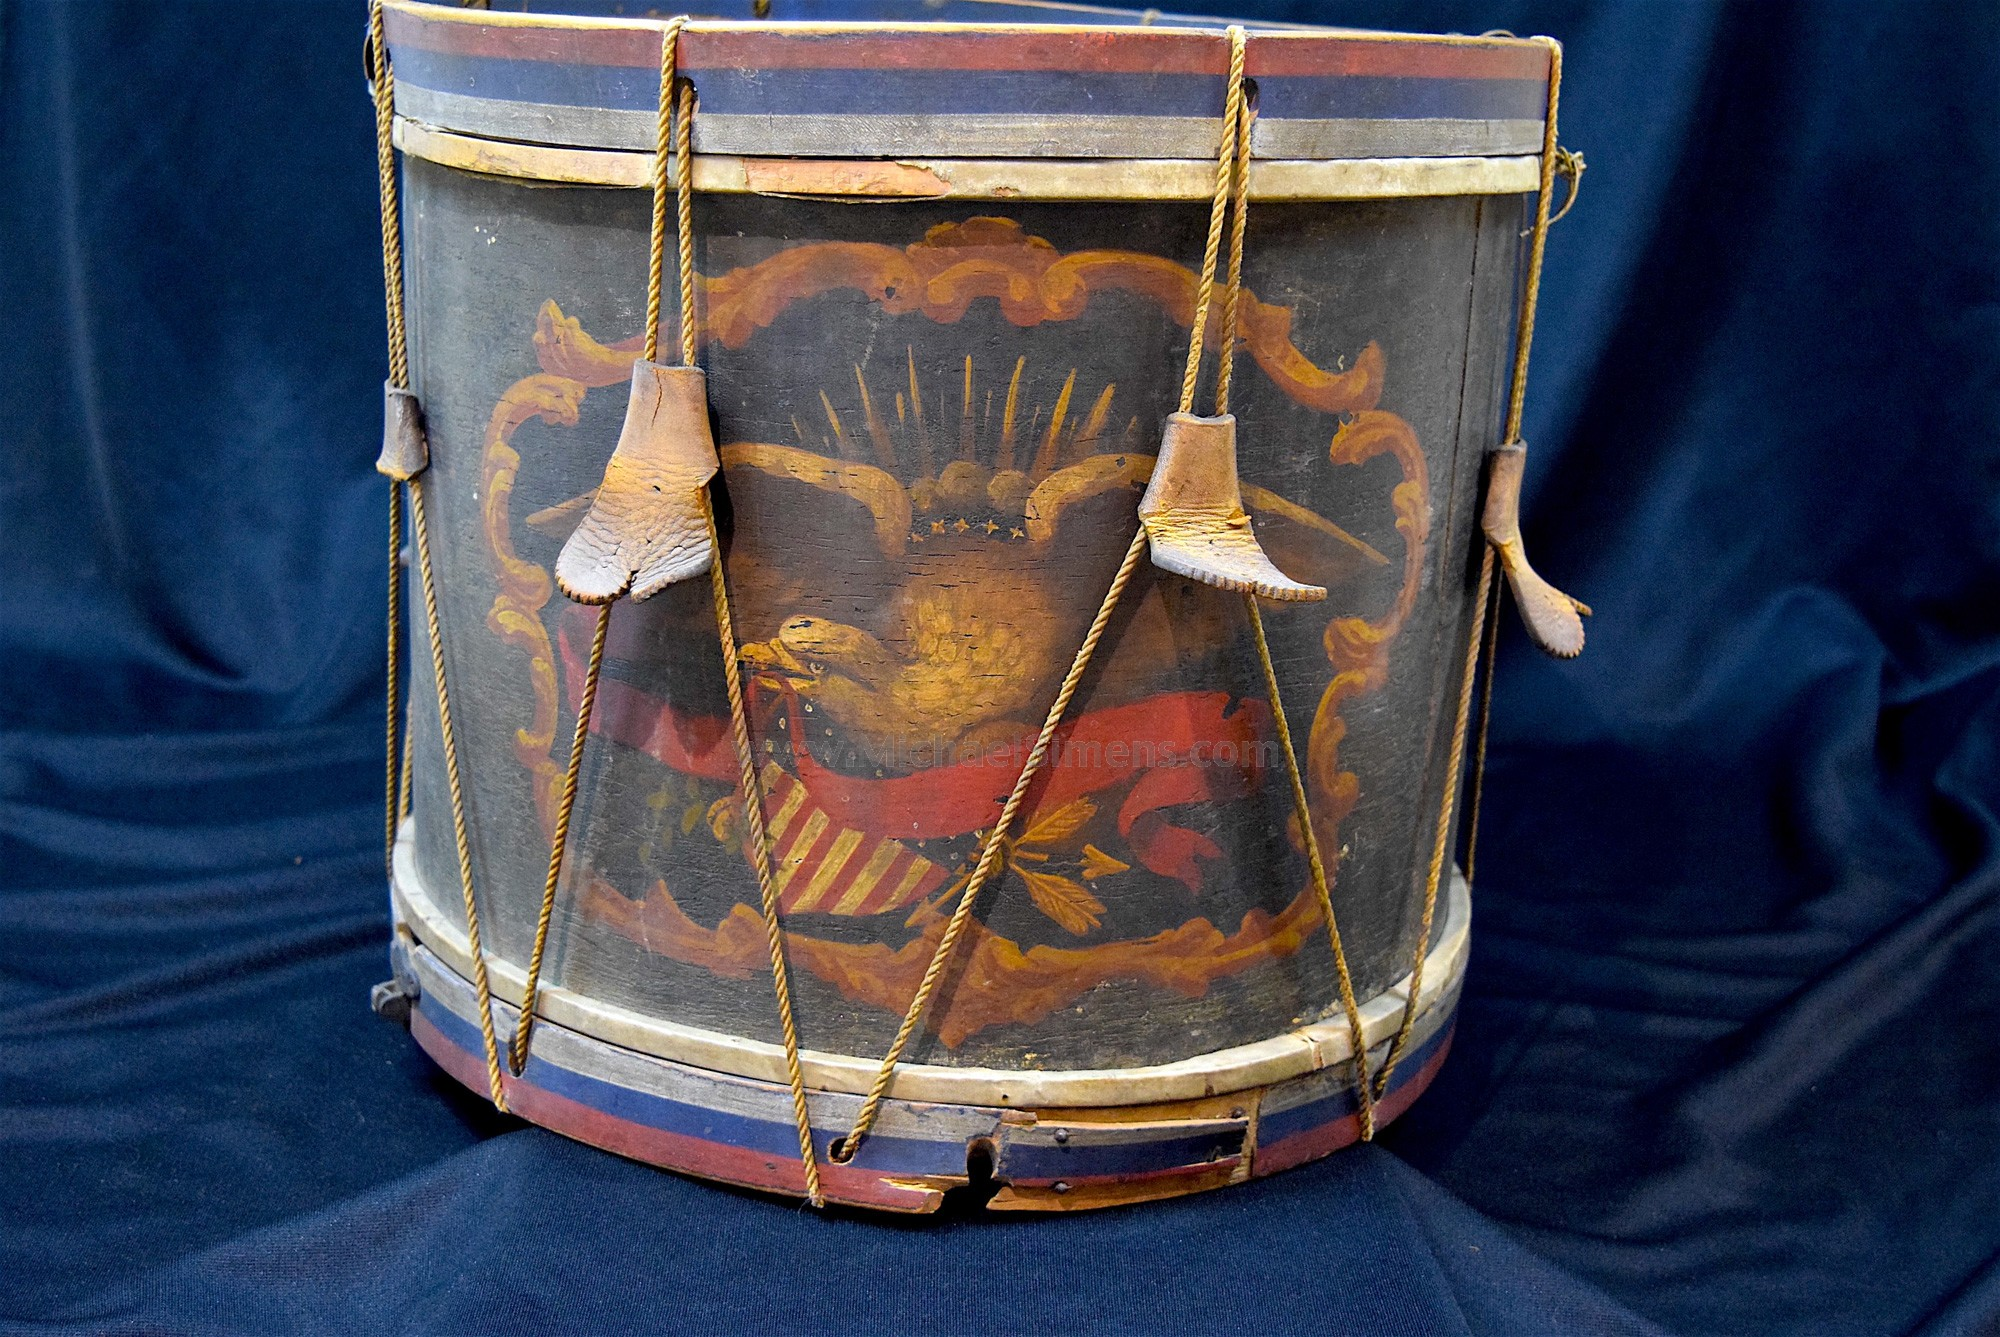 FULLY IDENTIFIED CIVIL WAR DRUM AND ARTIFACTS FROM OHIO WITH FULL-FAMILY DOCUMENTATION, PHOTO ALBUM, DISCHARGE, ETC.